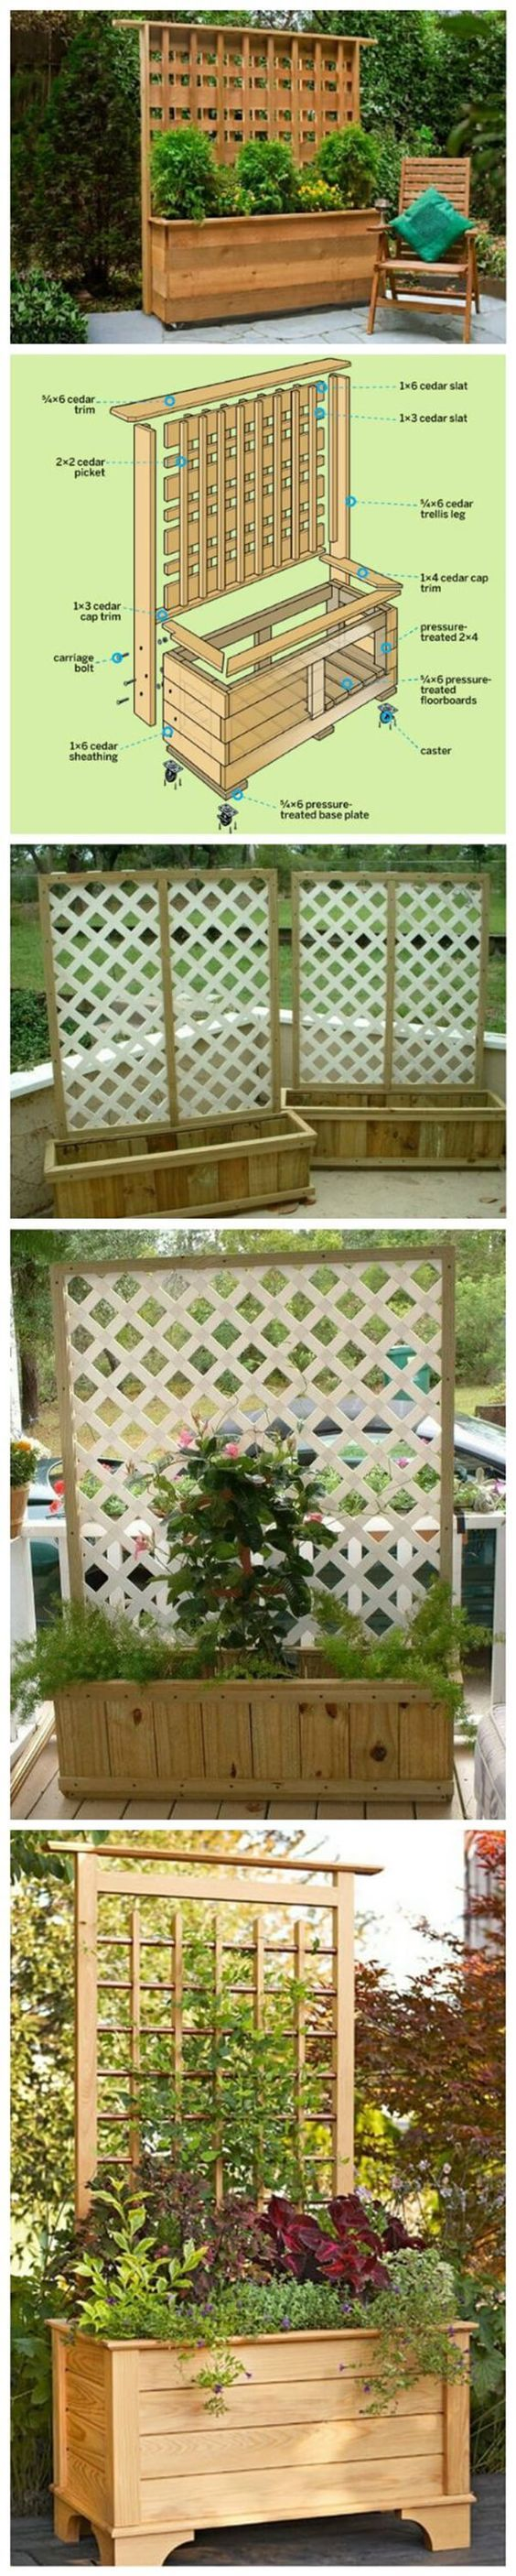 DIY Planter Box with Climbing Trellis.